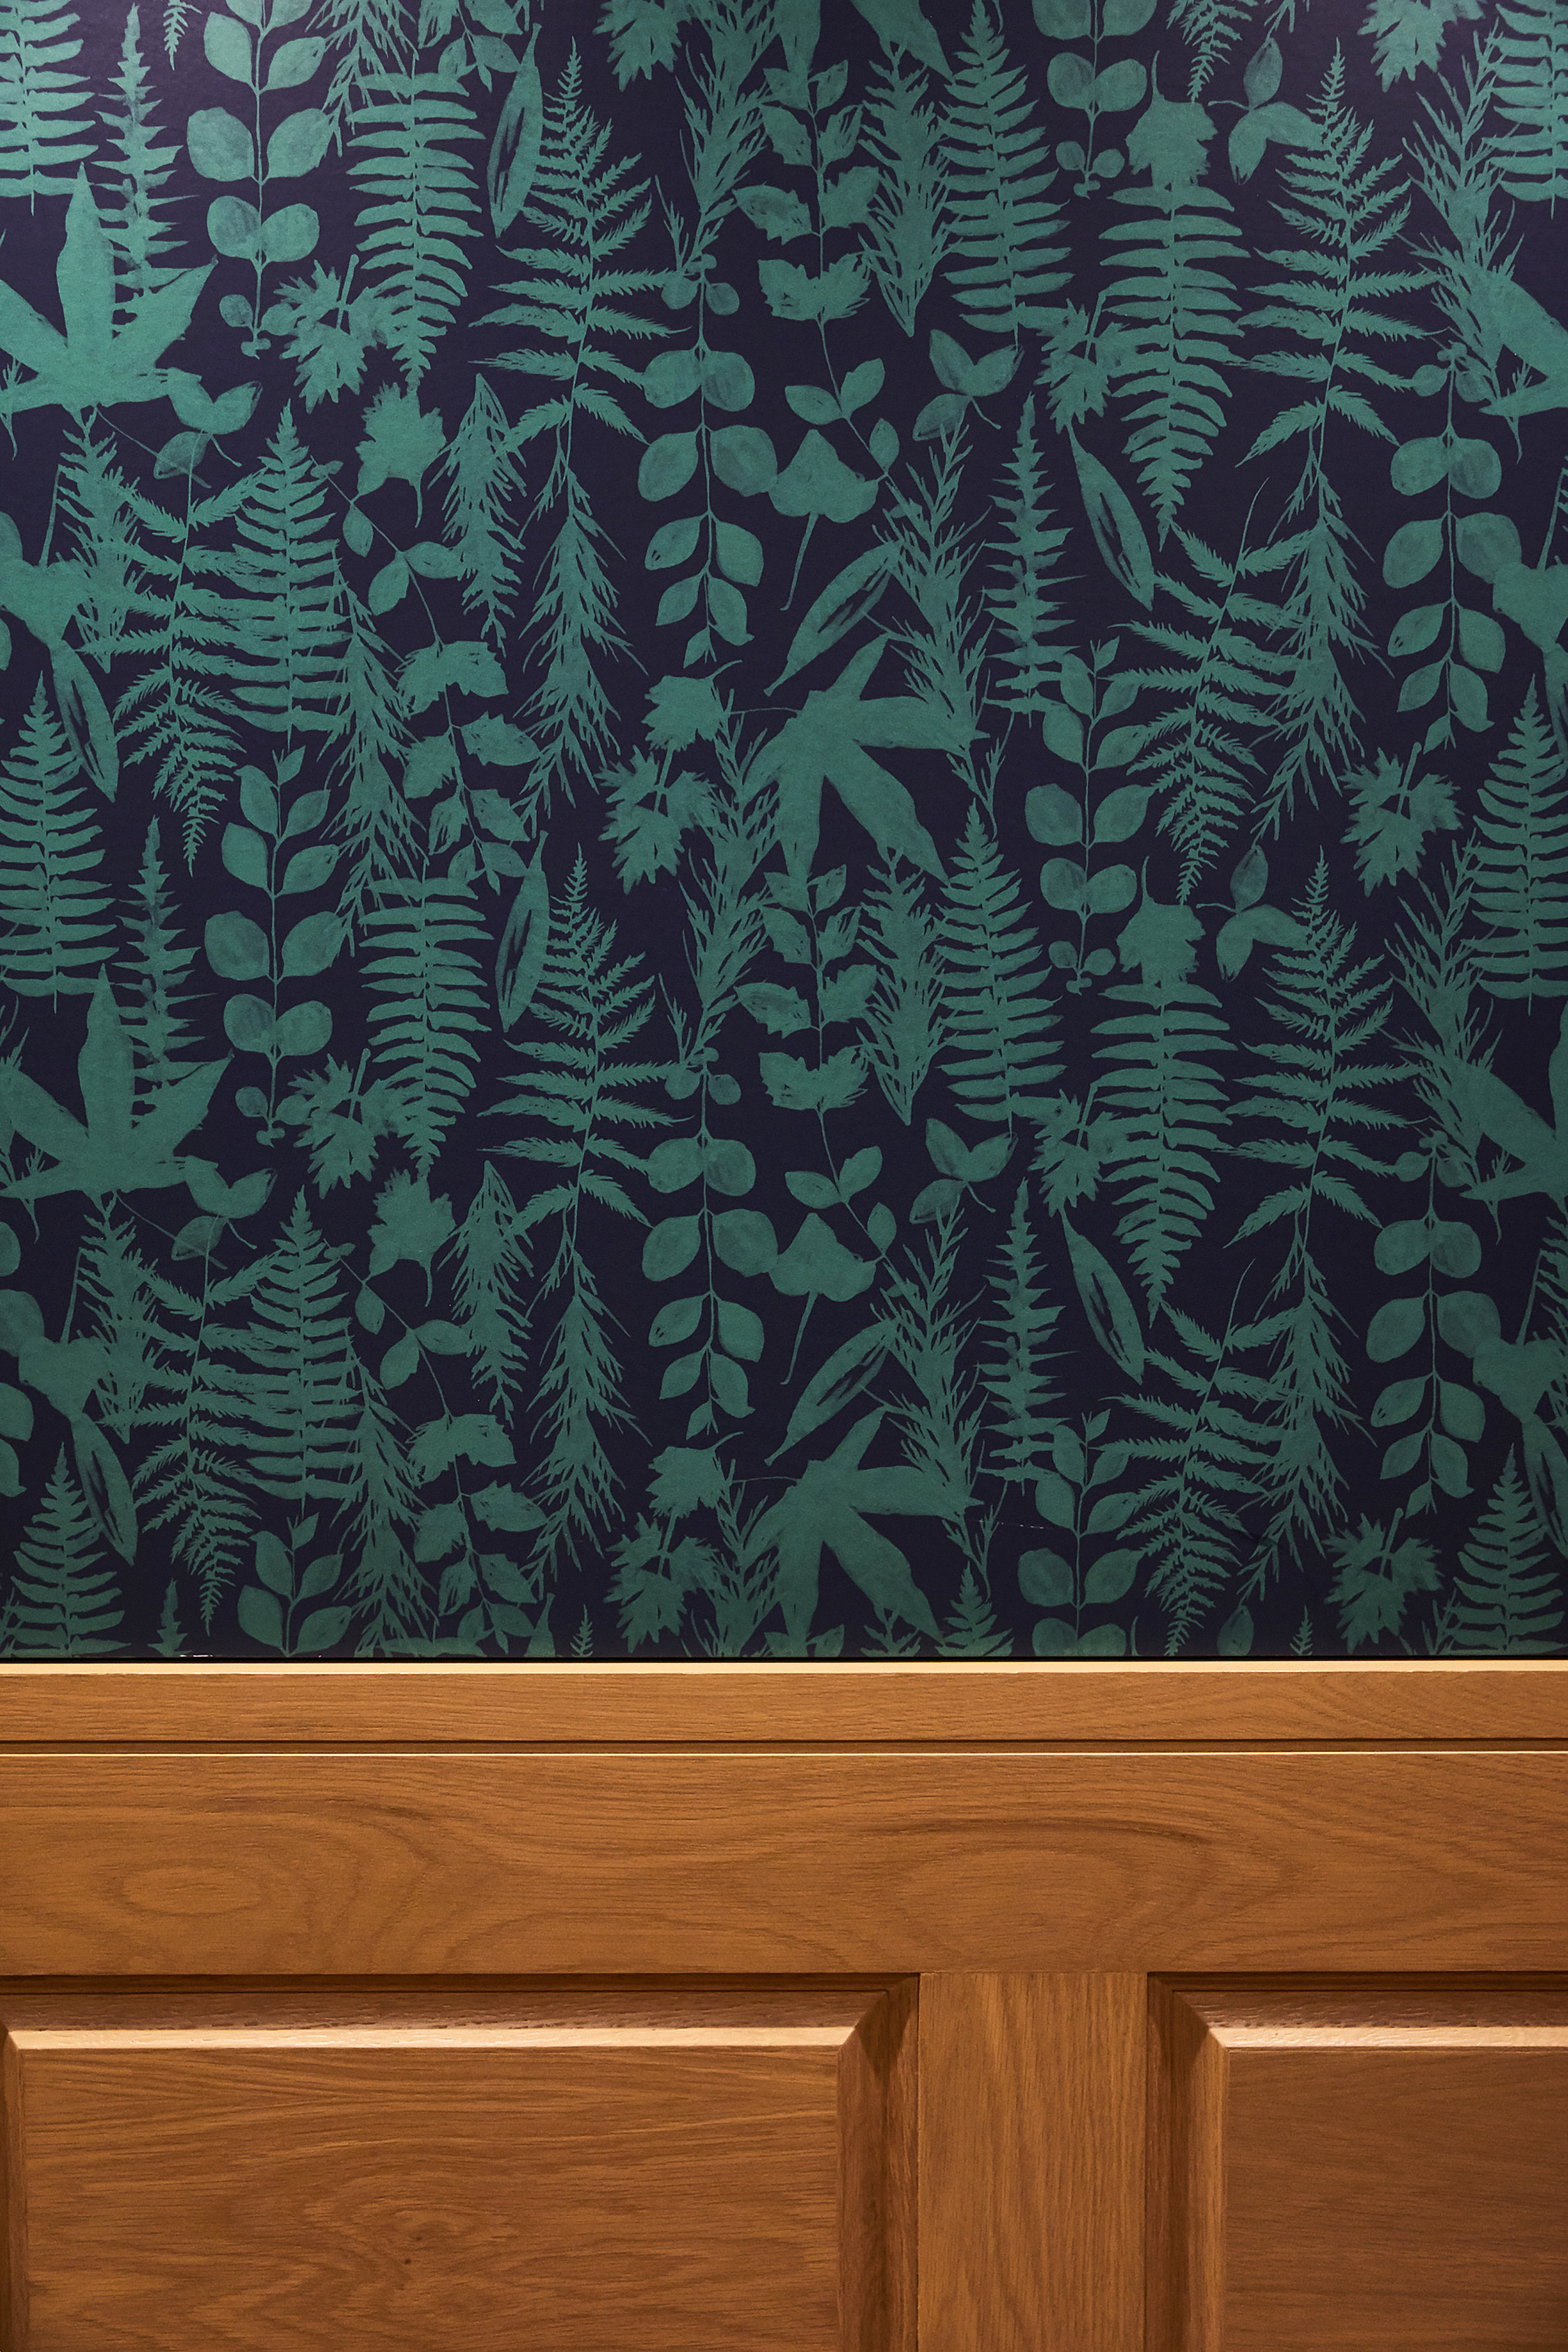 Woodlark Lobby | Smith Hanes. Elevator Wallpaper